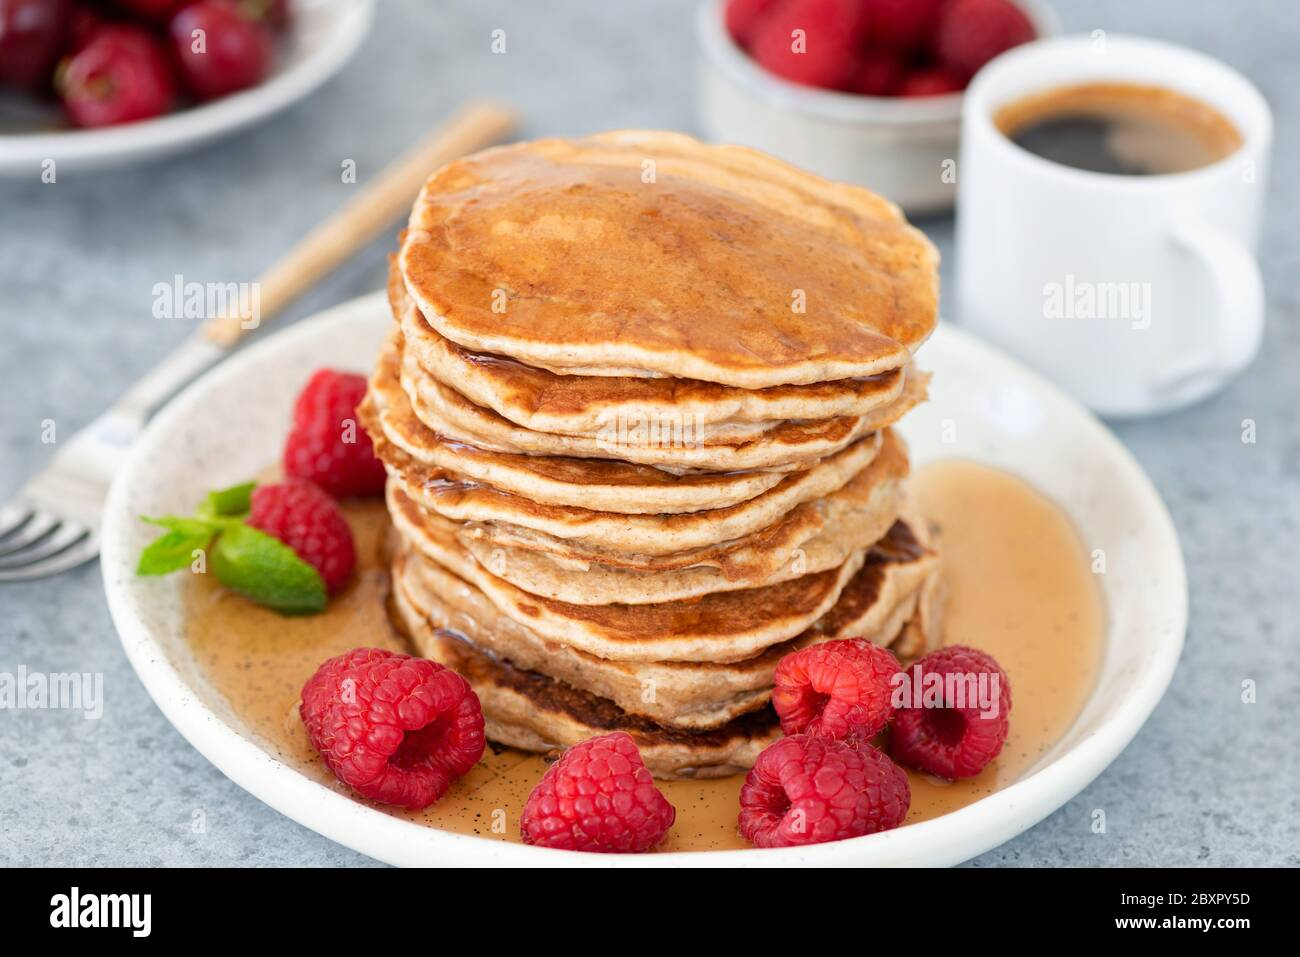 Pancakes With Syrup And Raspberries On Plate Cup Of Espresso Coffee On Background Tasty Sweet Breakfast Food Stock Photo Alamy